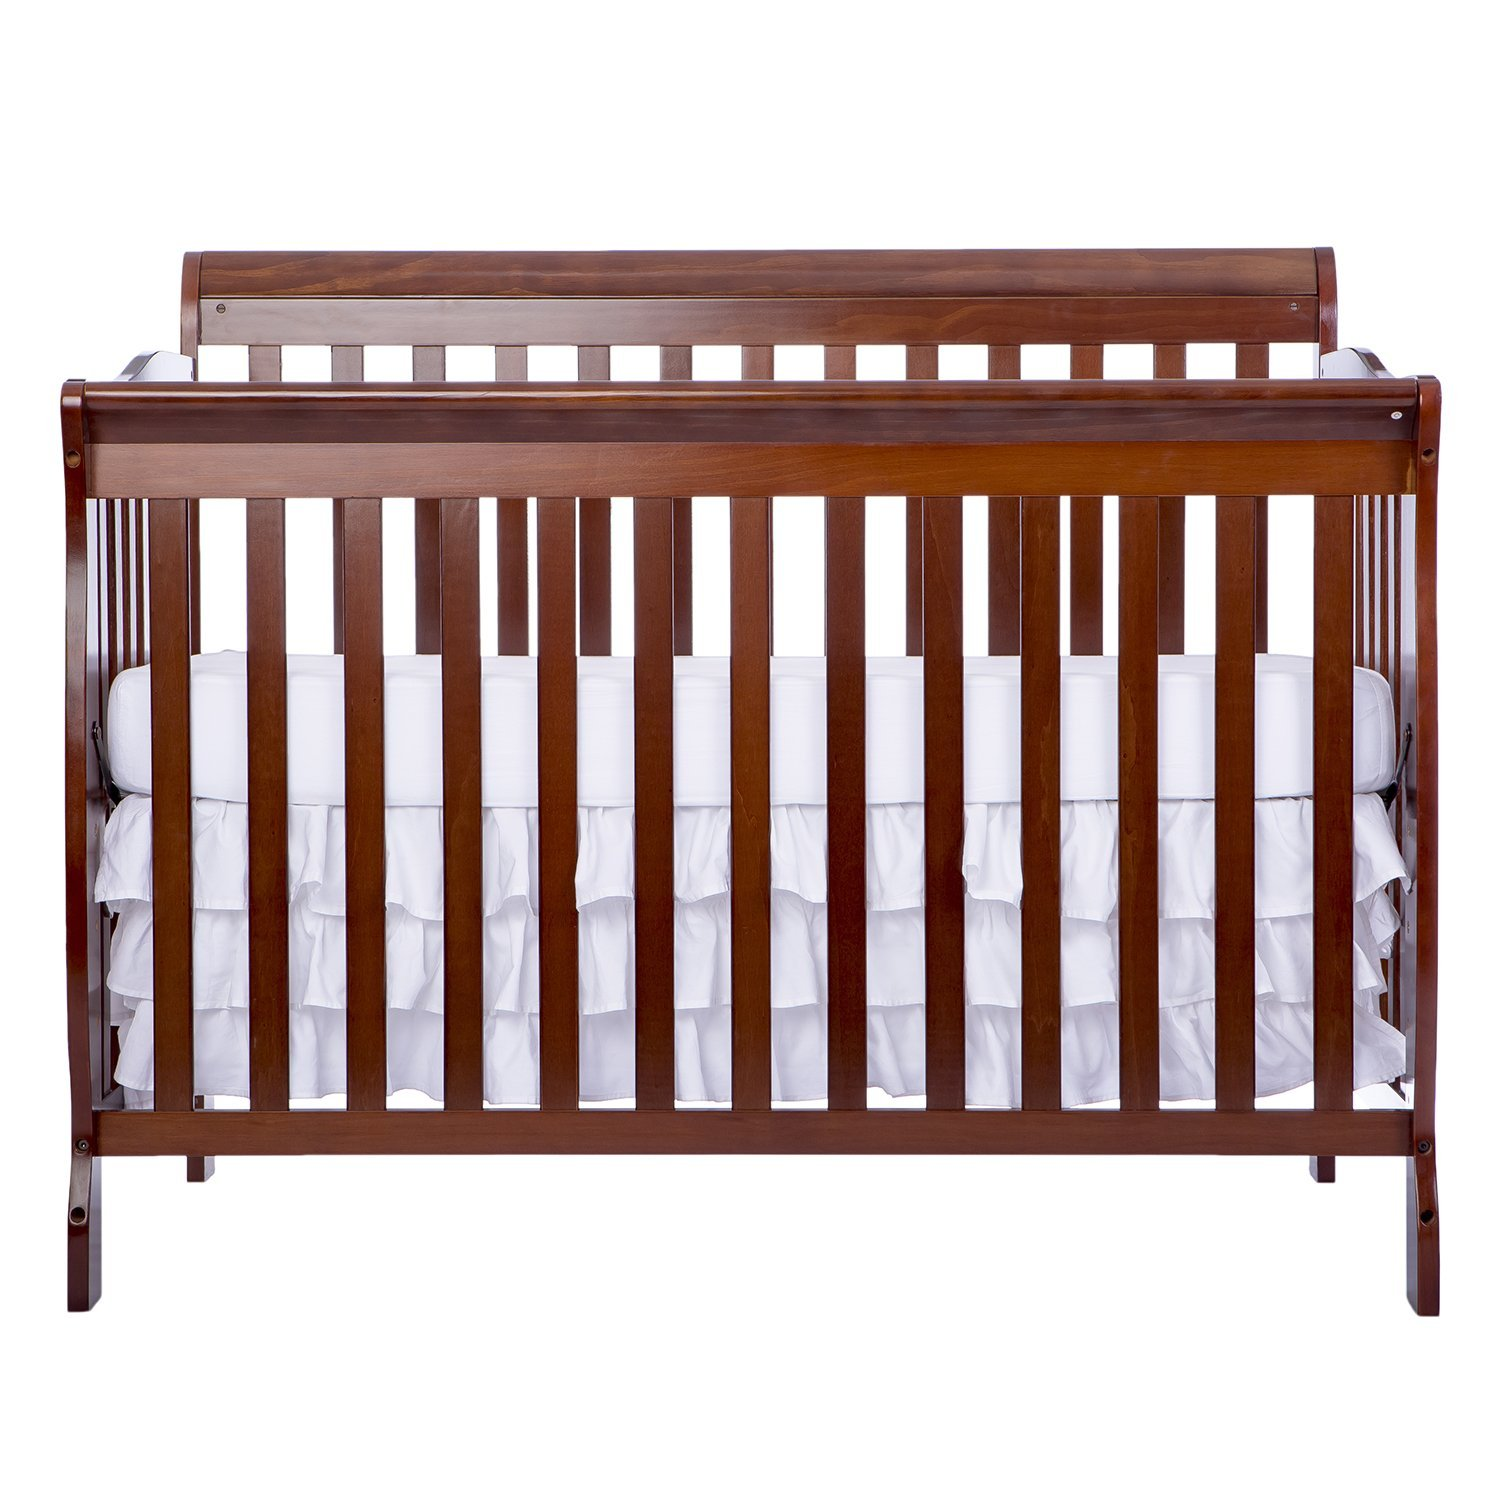 Baby Mattress Kmart Baby Beds At Kmart Find This Pin And More On Kmart